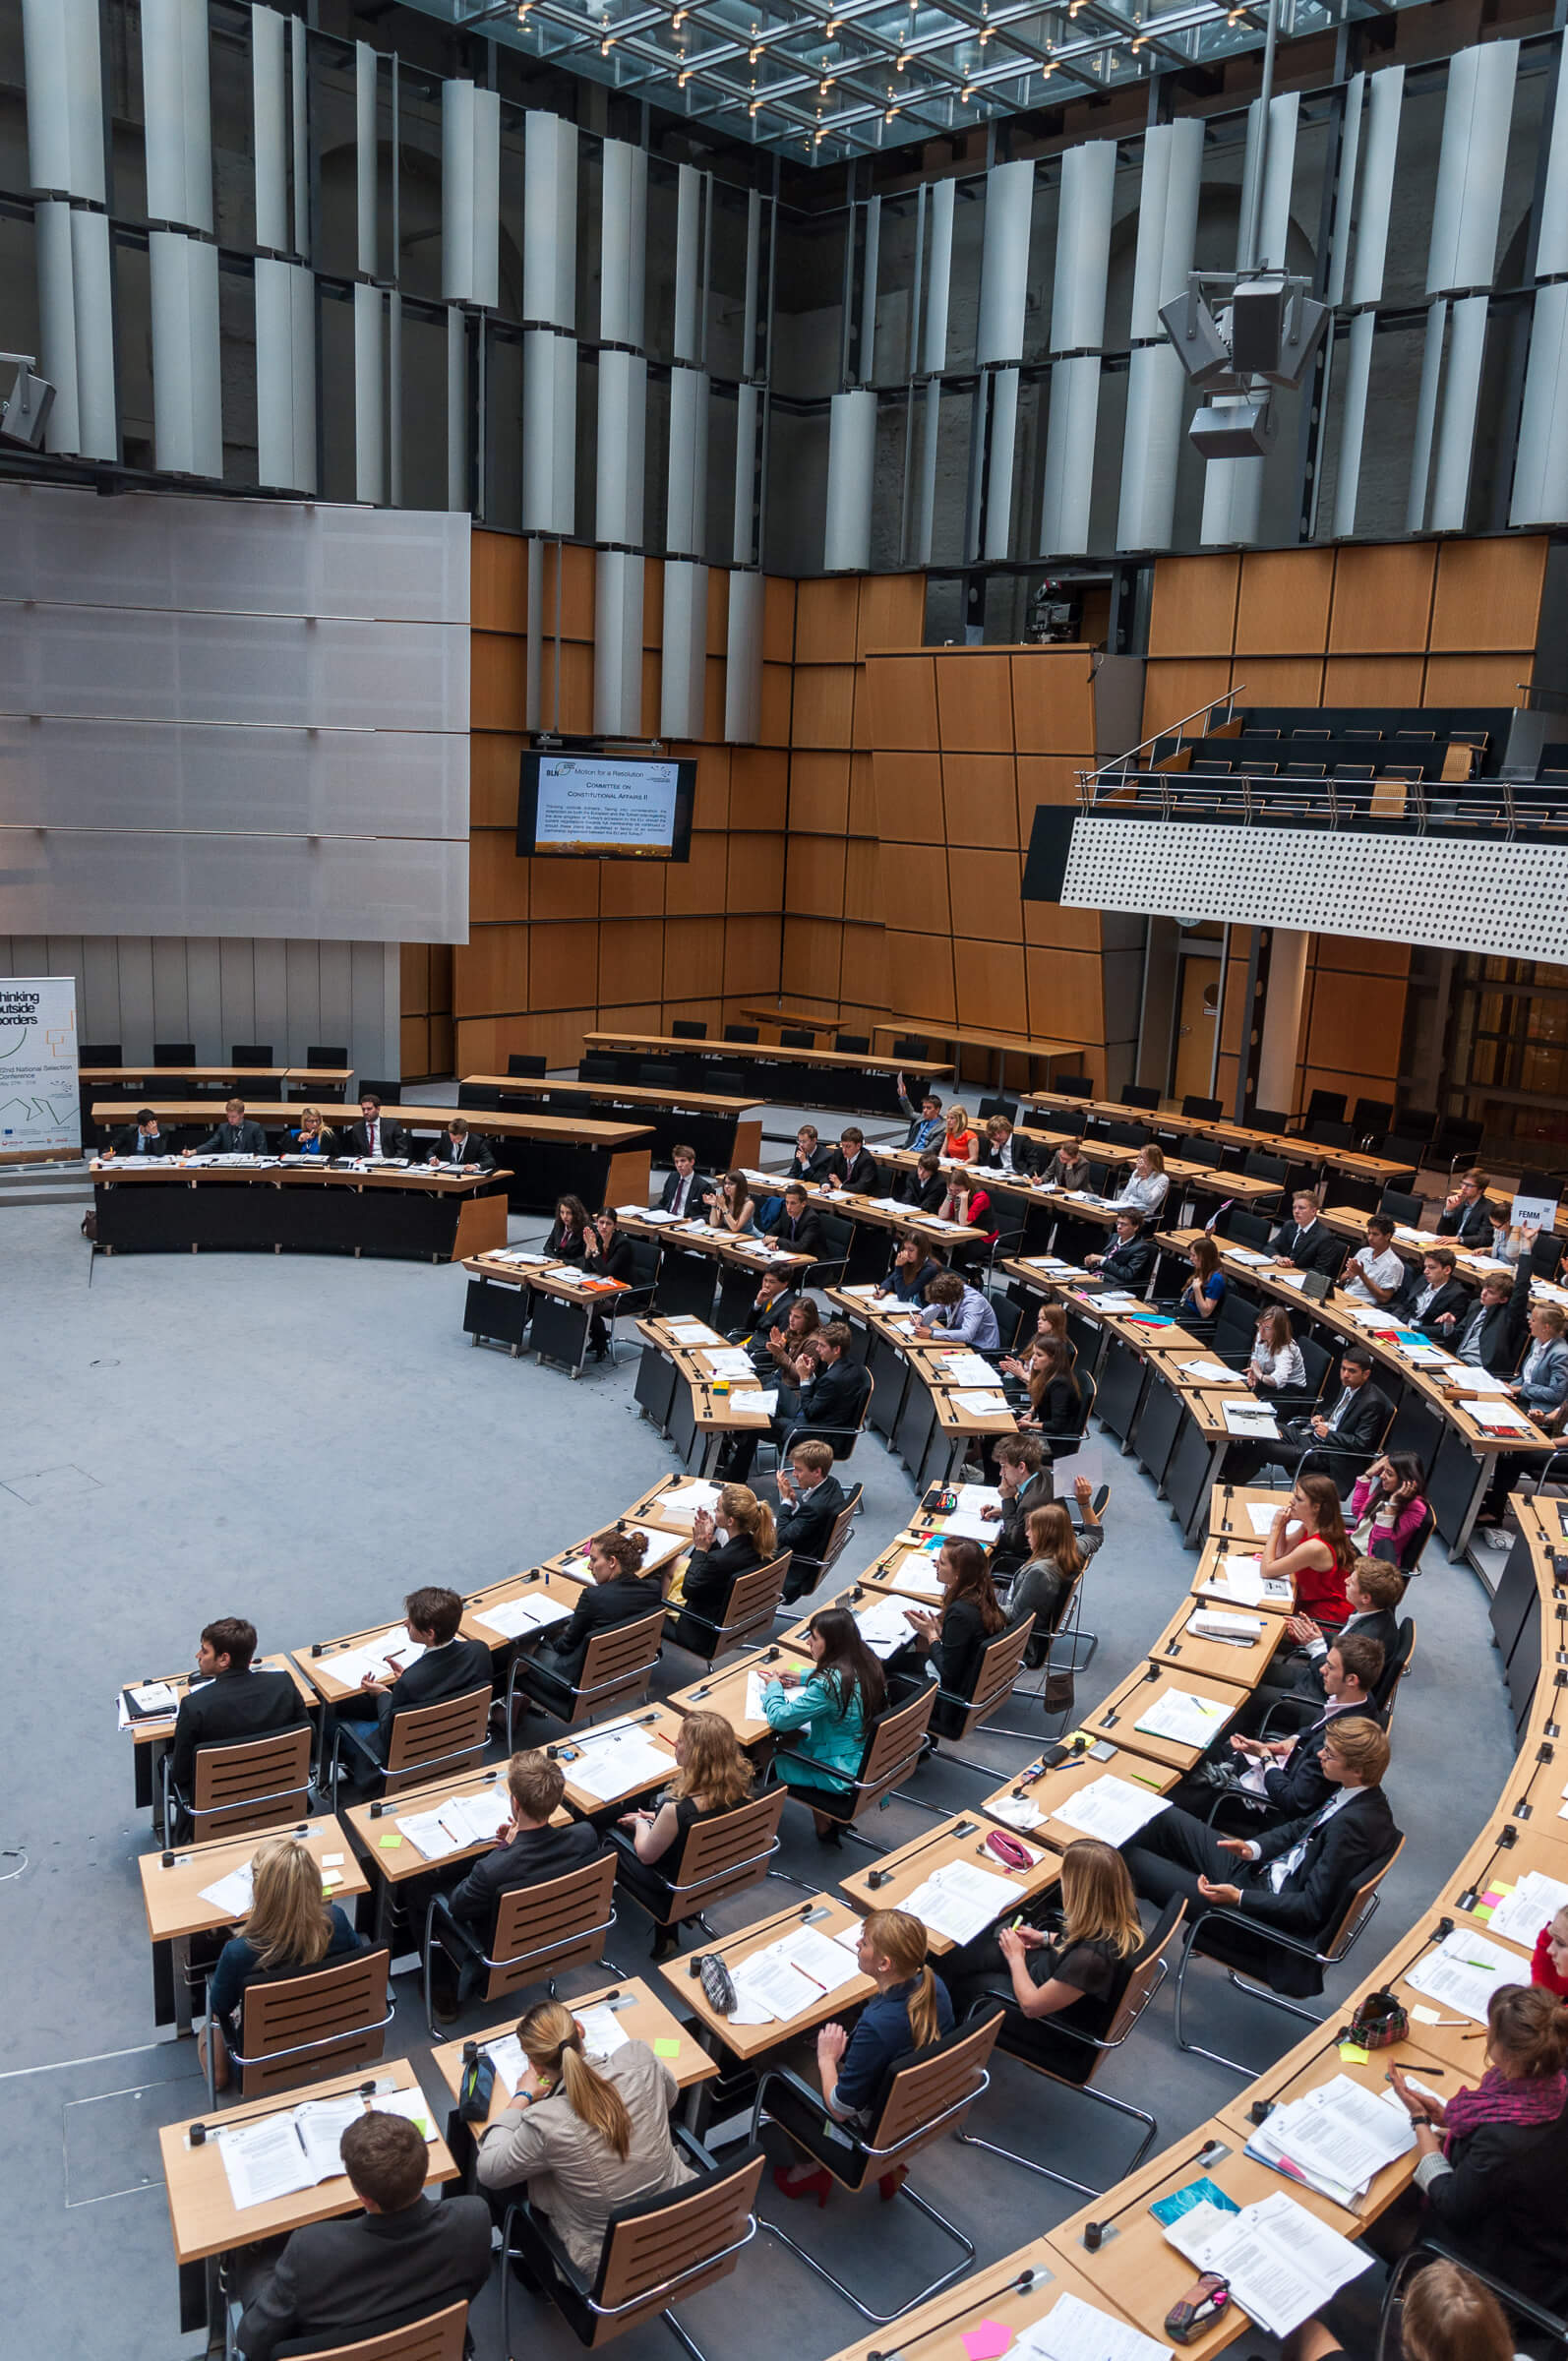 Parliamentish-National-Selection-Conference-Berlin-2012-by-Leo-Kaindl-2